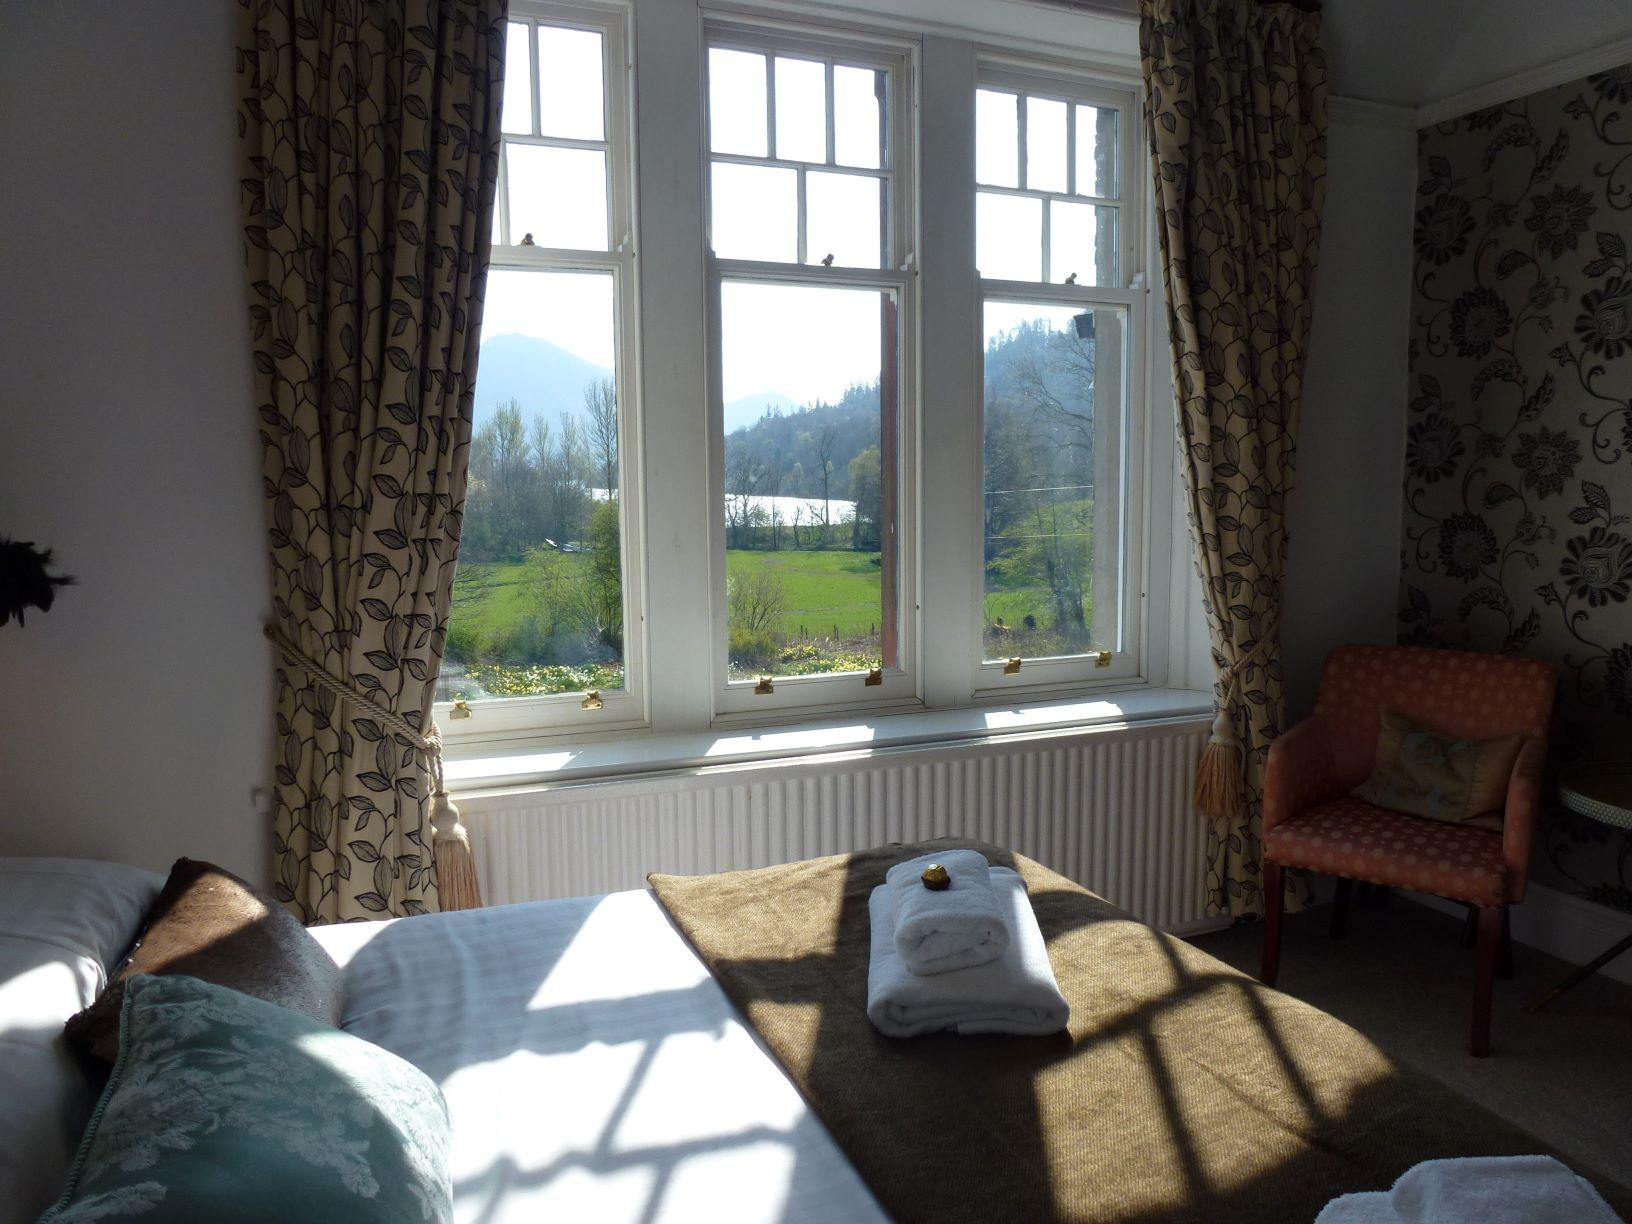 Guest House Superior Room with lake view of Bassenthwaite near Keswick